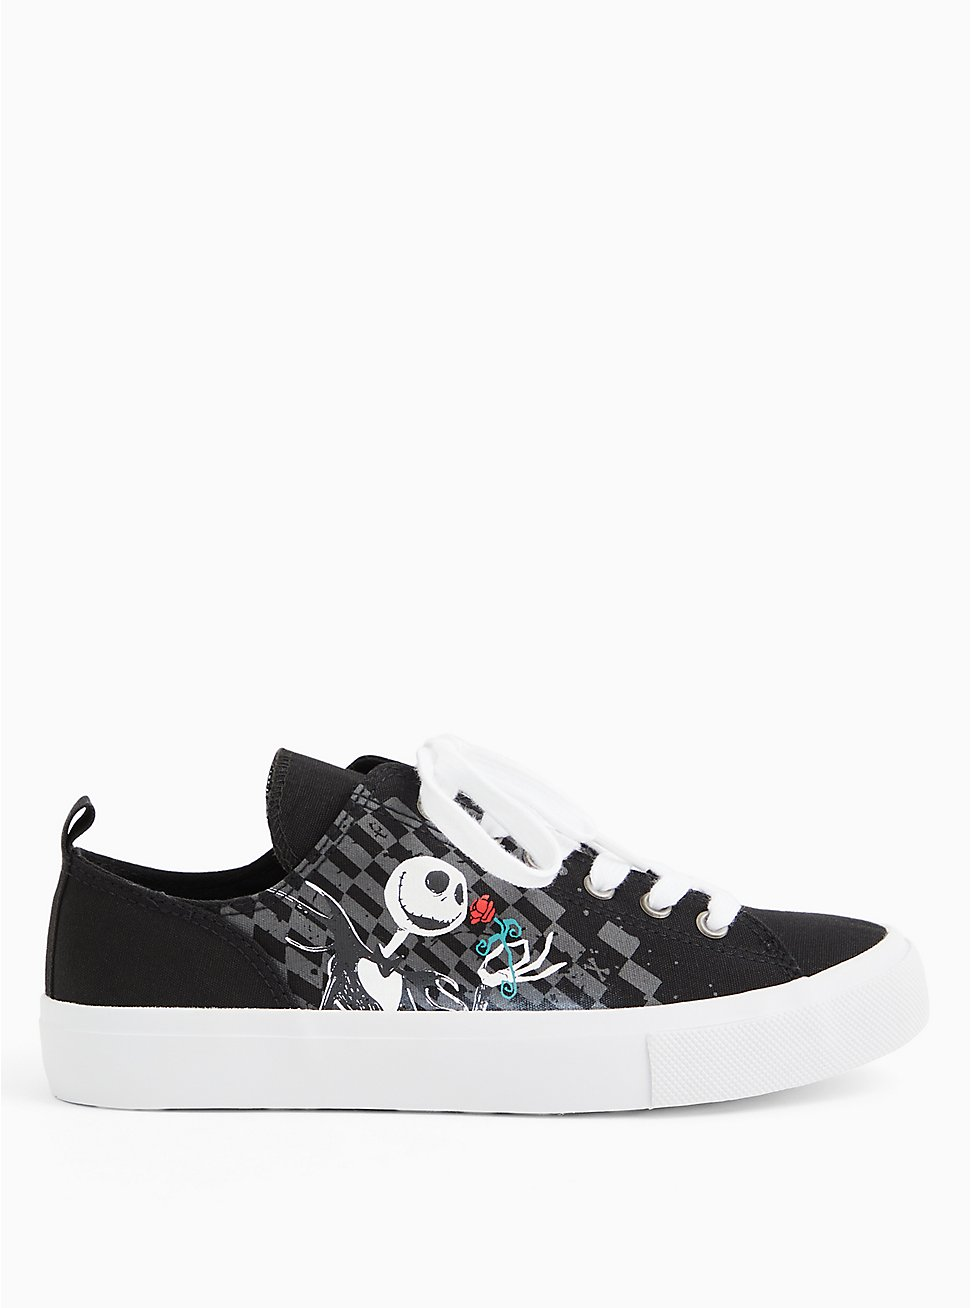 Plus Size Disney The Nightmare Before Christmas Jack and Sally Canvas Sneaker (WW), BLACK, hi-res